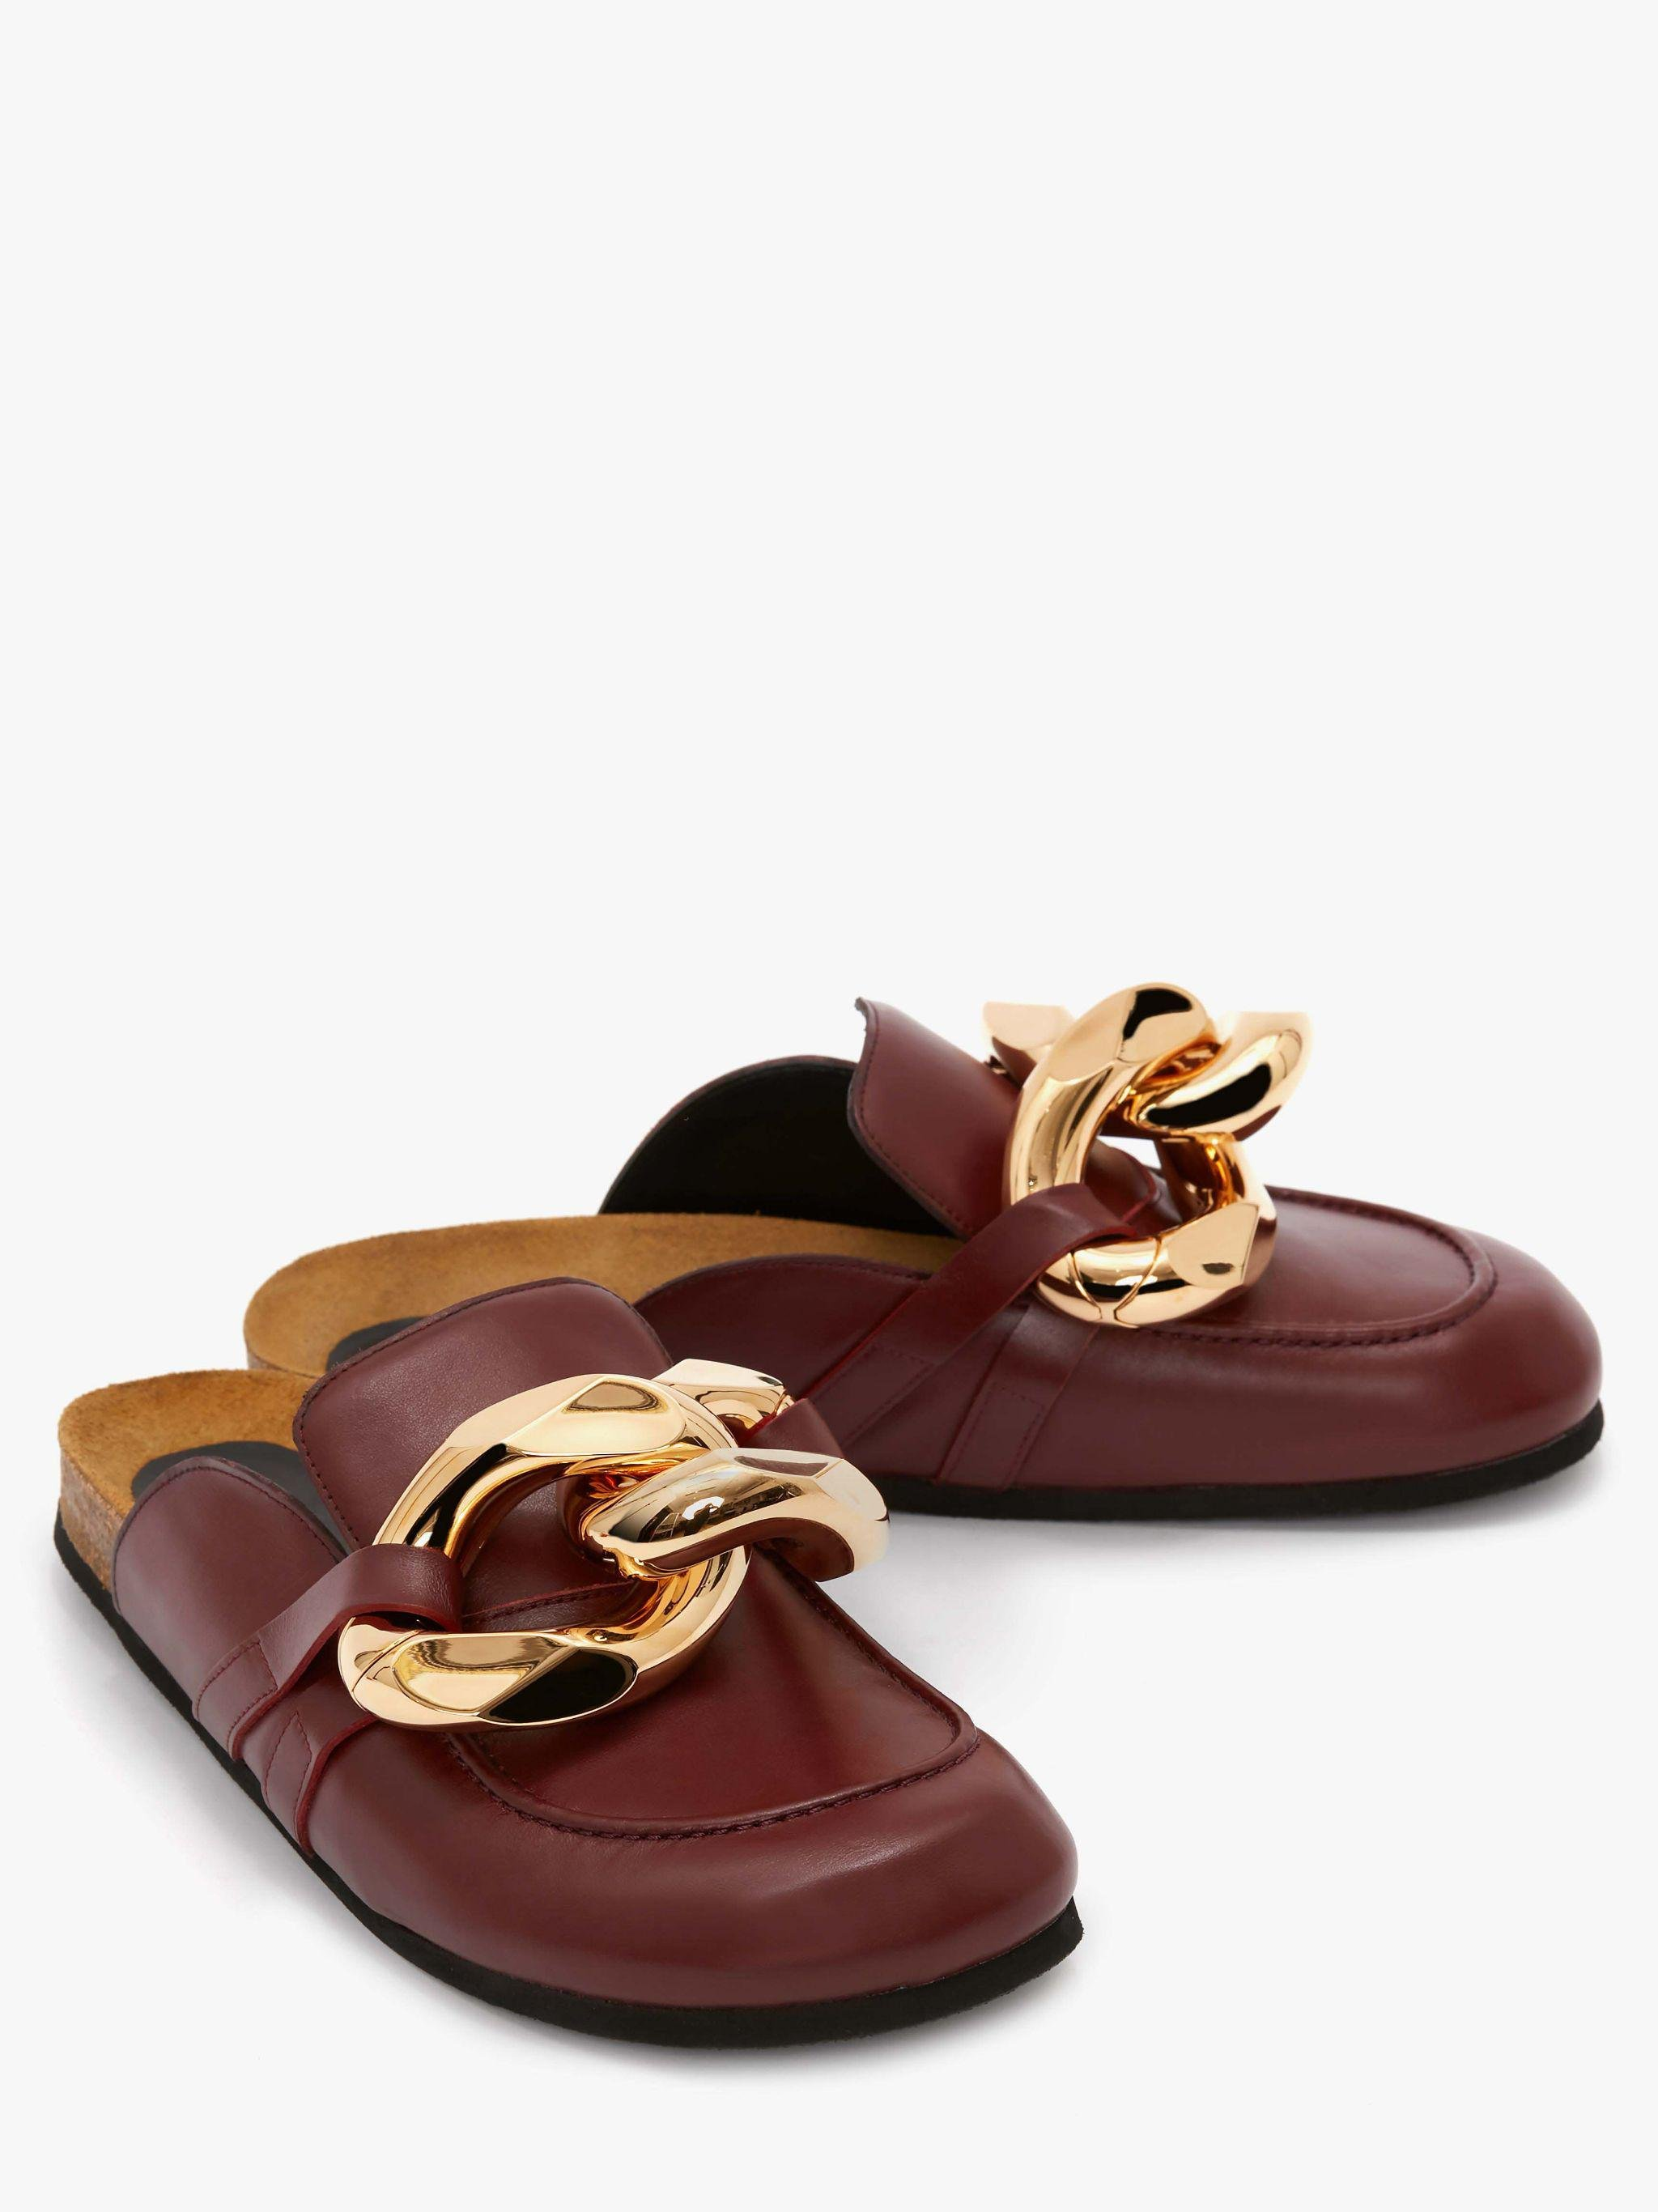 WOMEN'S CHAIN LOAFER 1